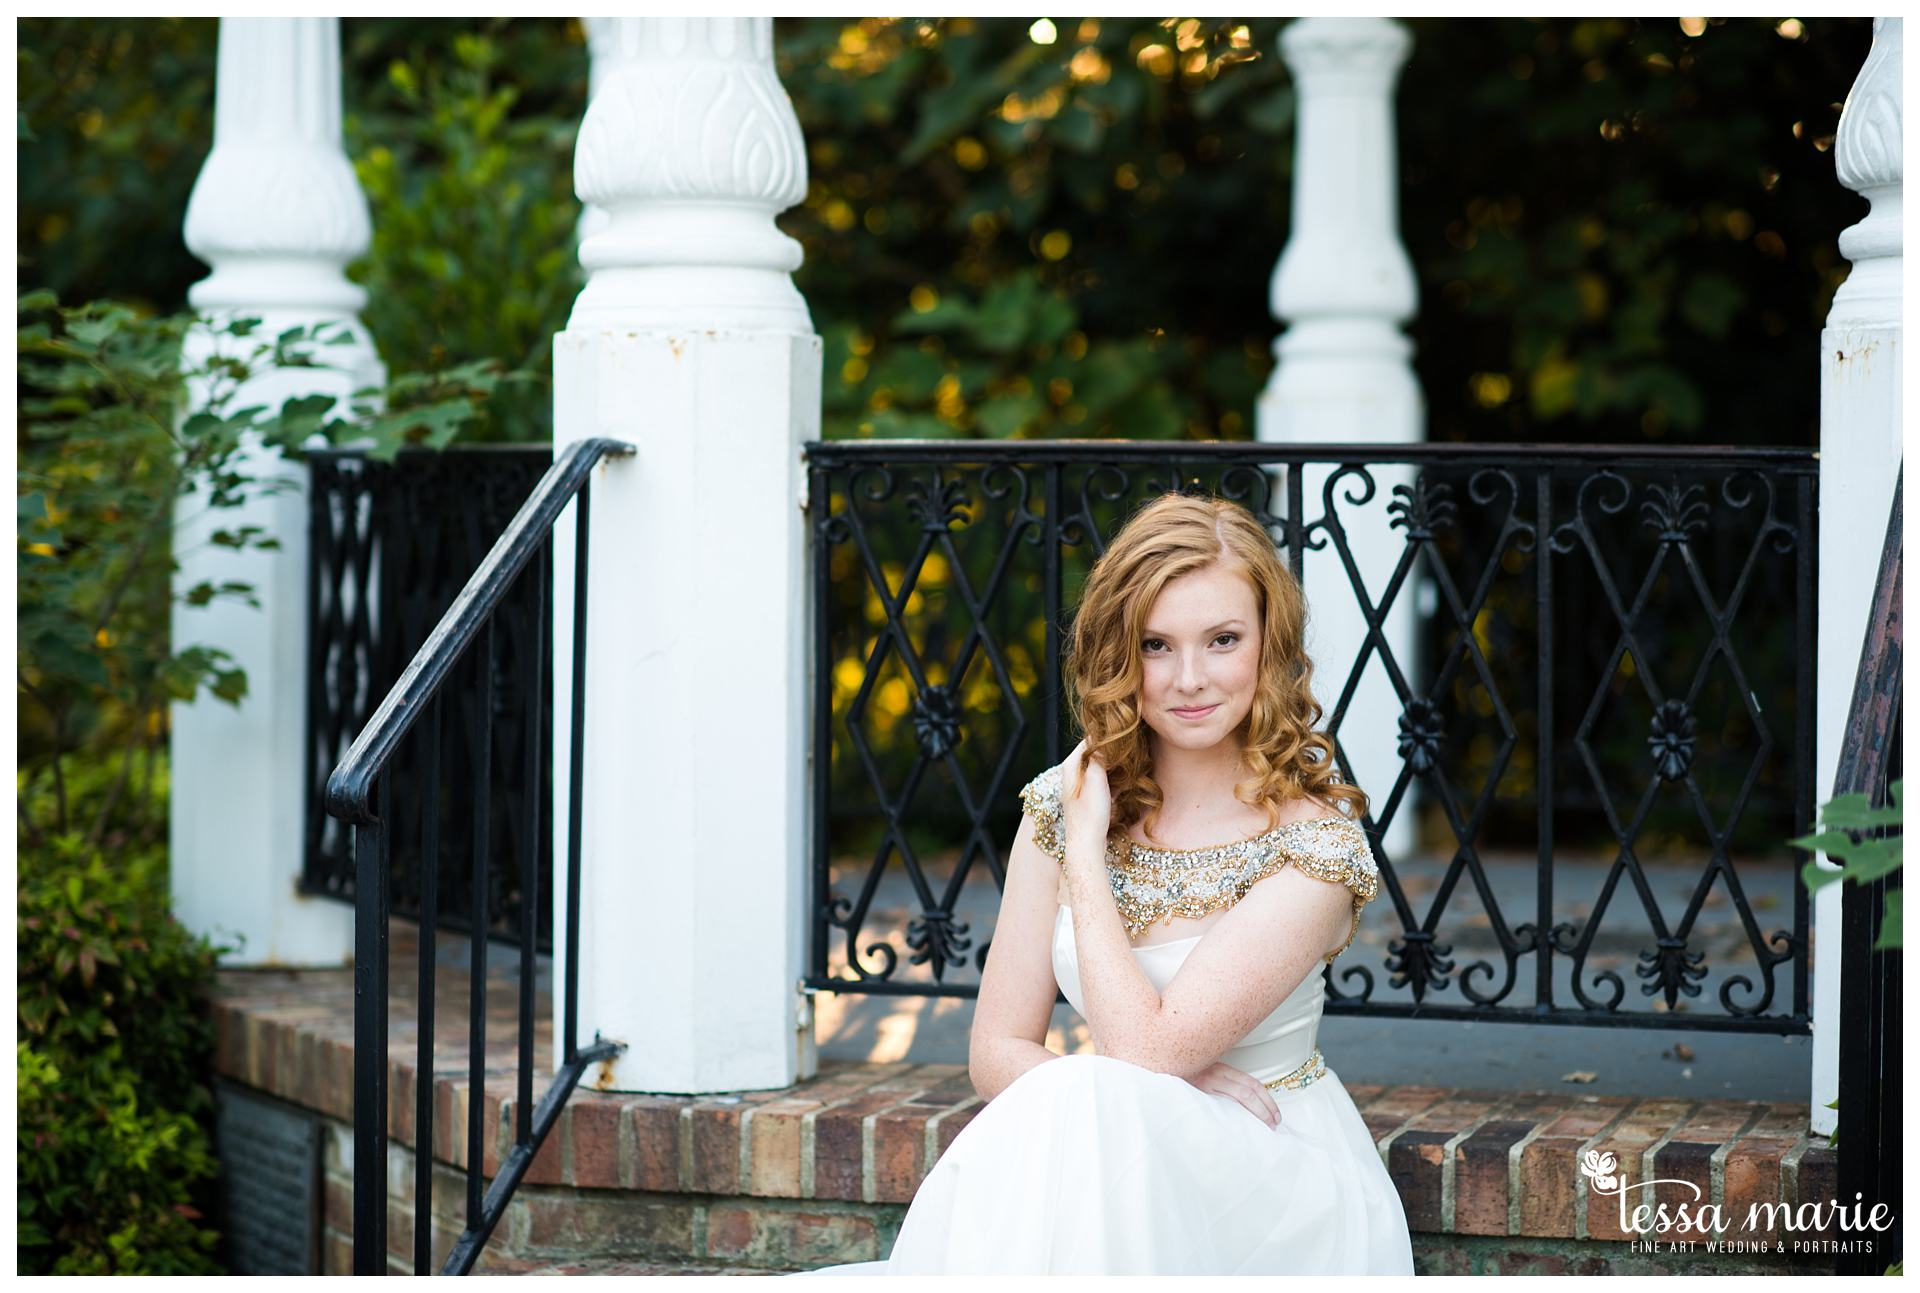 tessa_marie_weddings_legacy_story_focused_wedding_pictures_atlanta_wedding_photographer_family_pictures_portrait_Fine_art_memories_mothers_day_spring_moments_0328